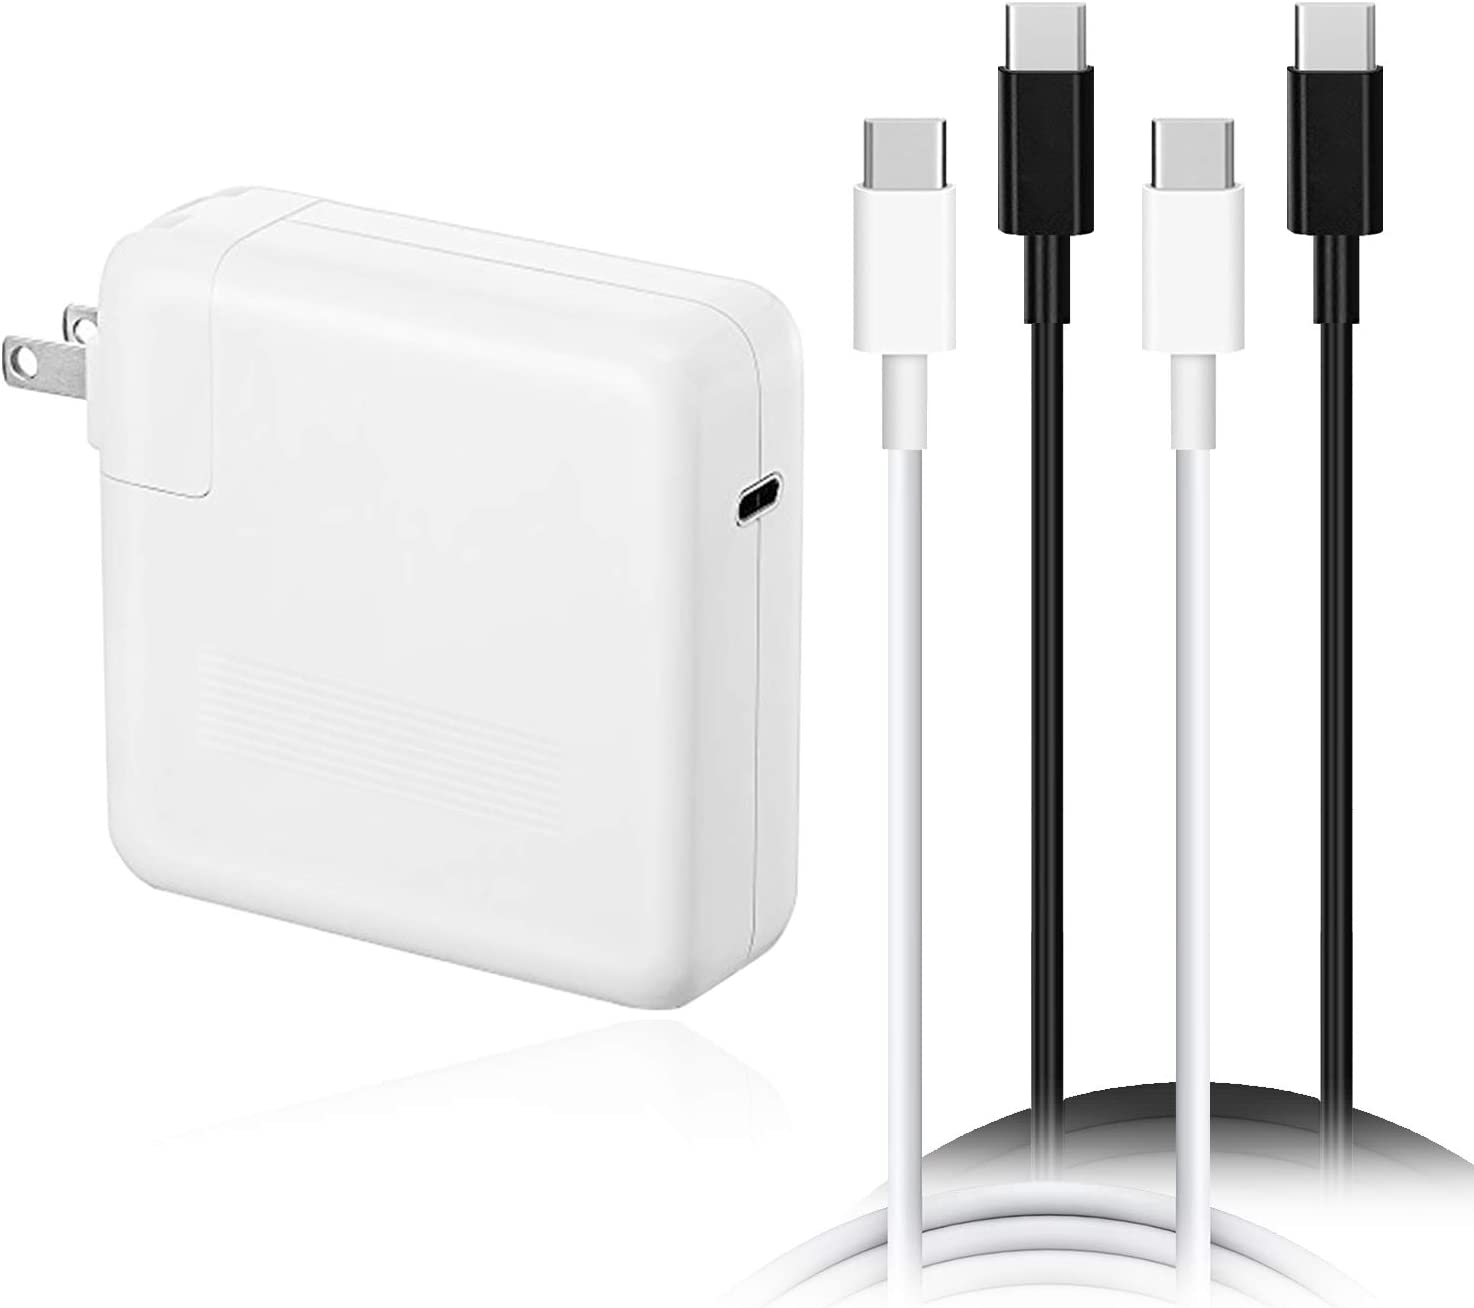 BatPower 87W USB-C Power Adapter Charger for 2016 2017 2018 2019 MacBook Pro 15-inch Touch Bar Two Four Thunderbolt 3 Ports Apple A1719 A1708 87W Power Supply PD USB C Laptop Type C Connector